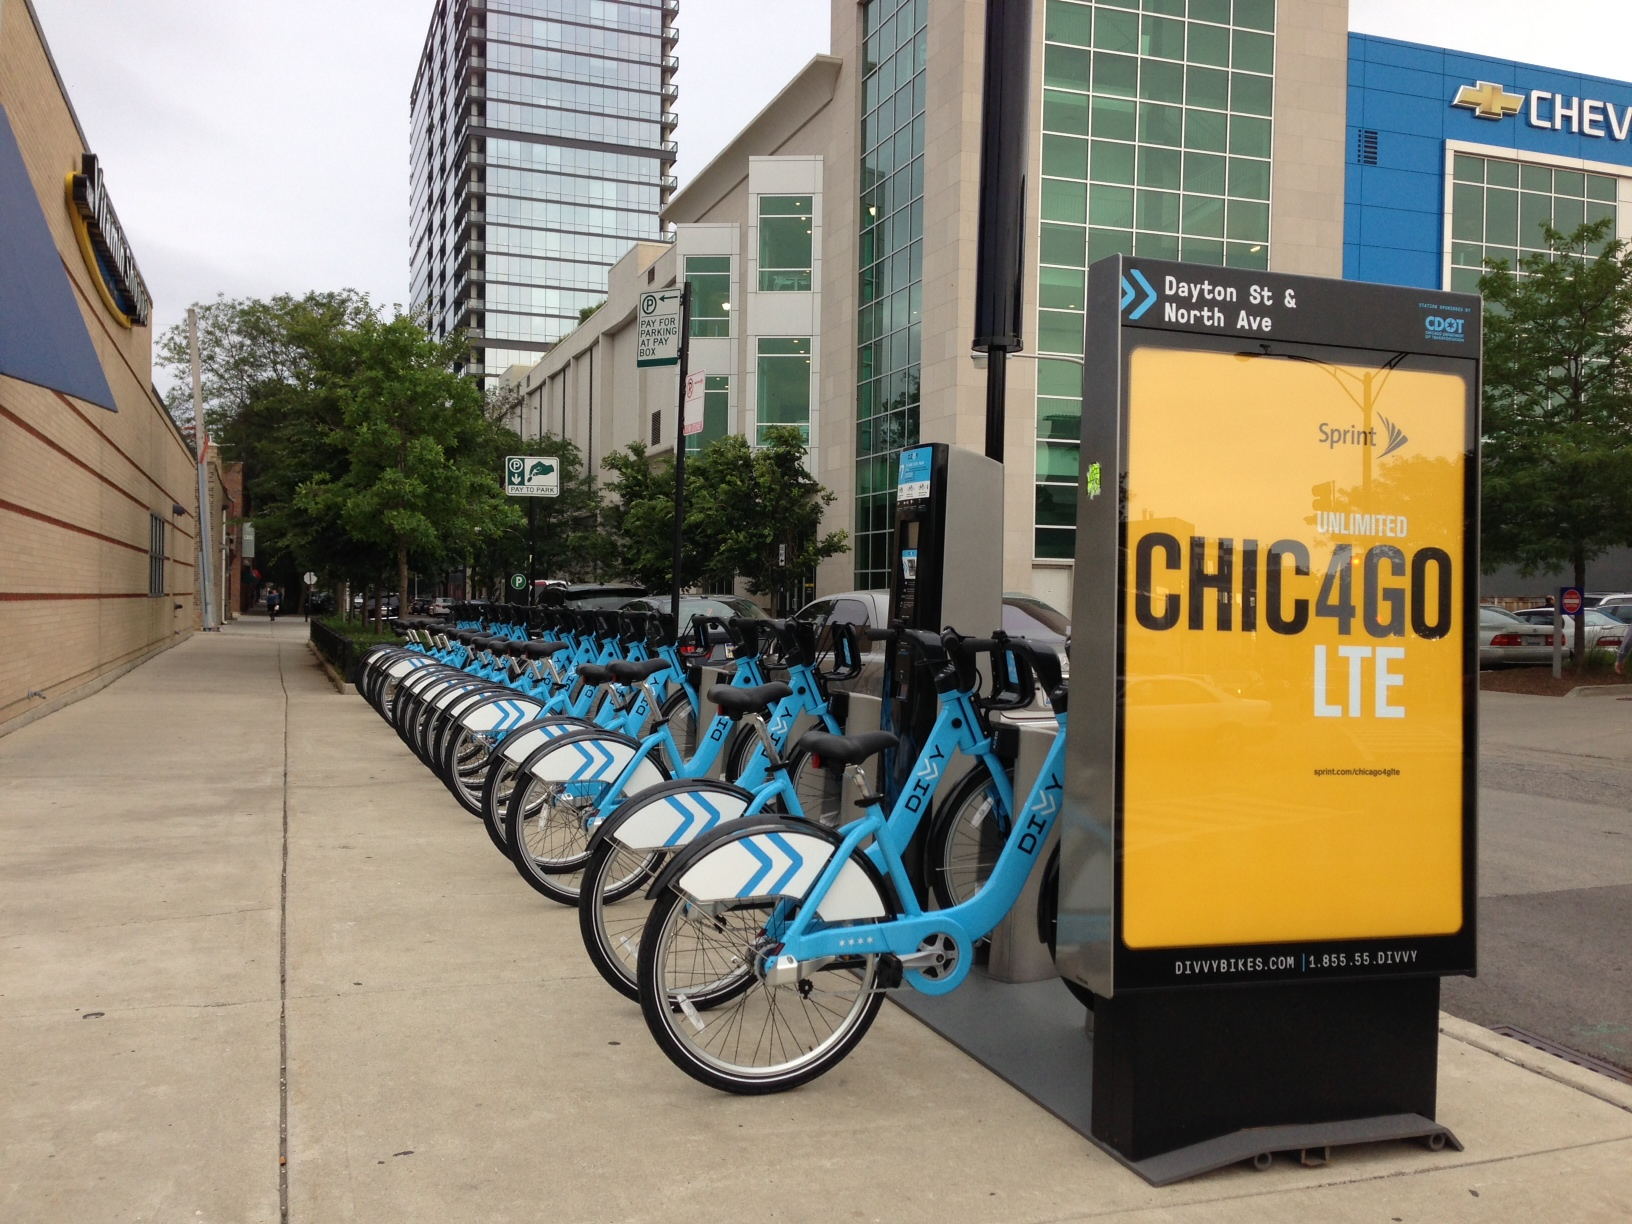 Chicago City Workers Get Discount on Taxpayer-Subsidized Bikes